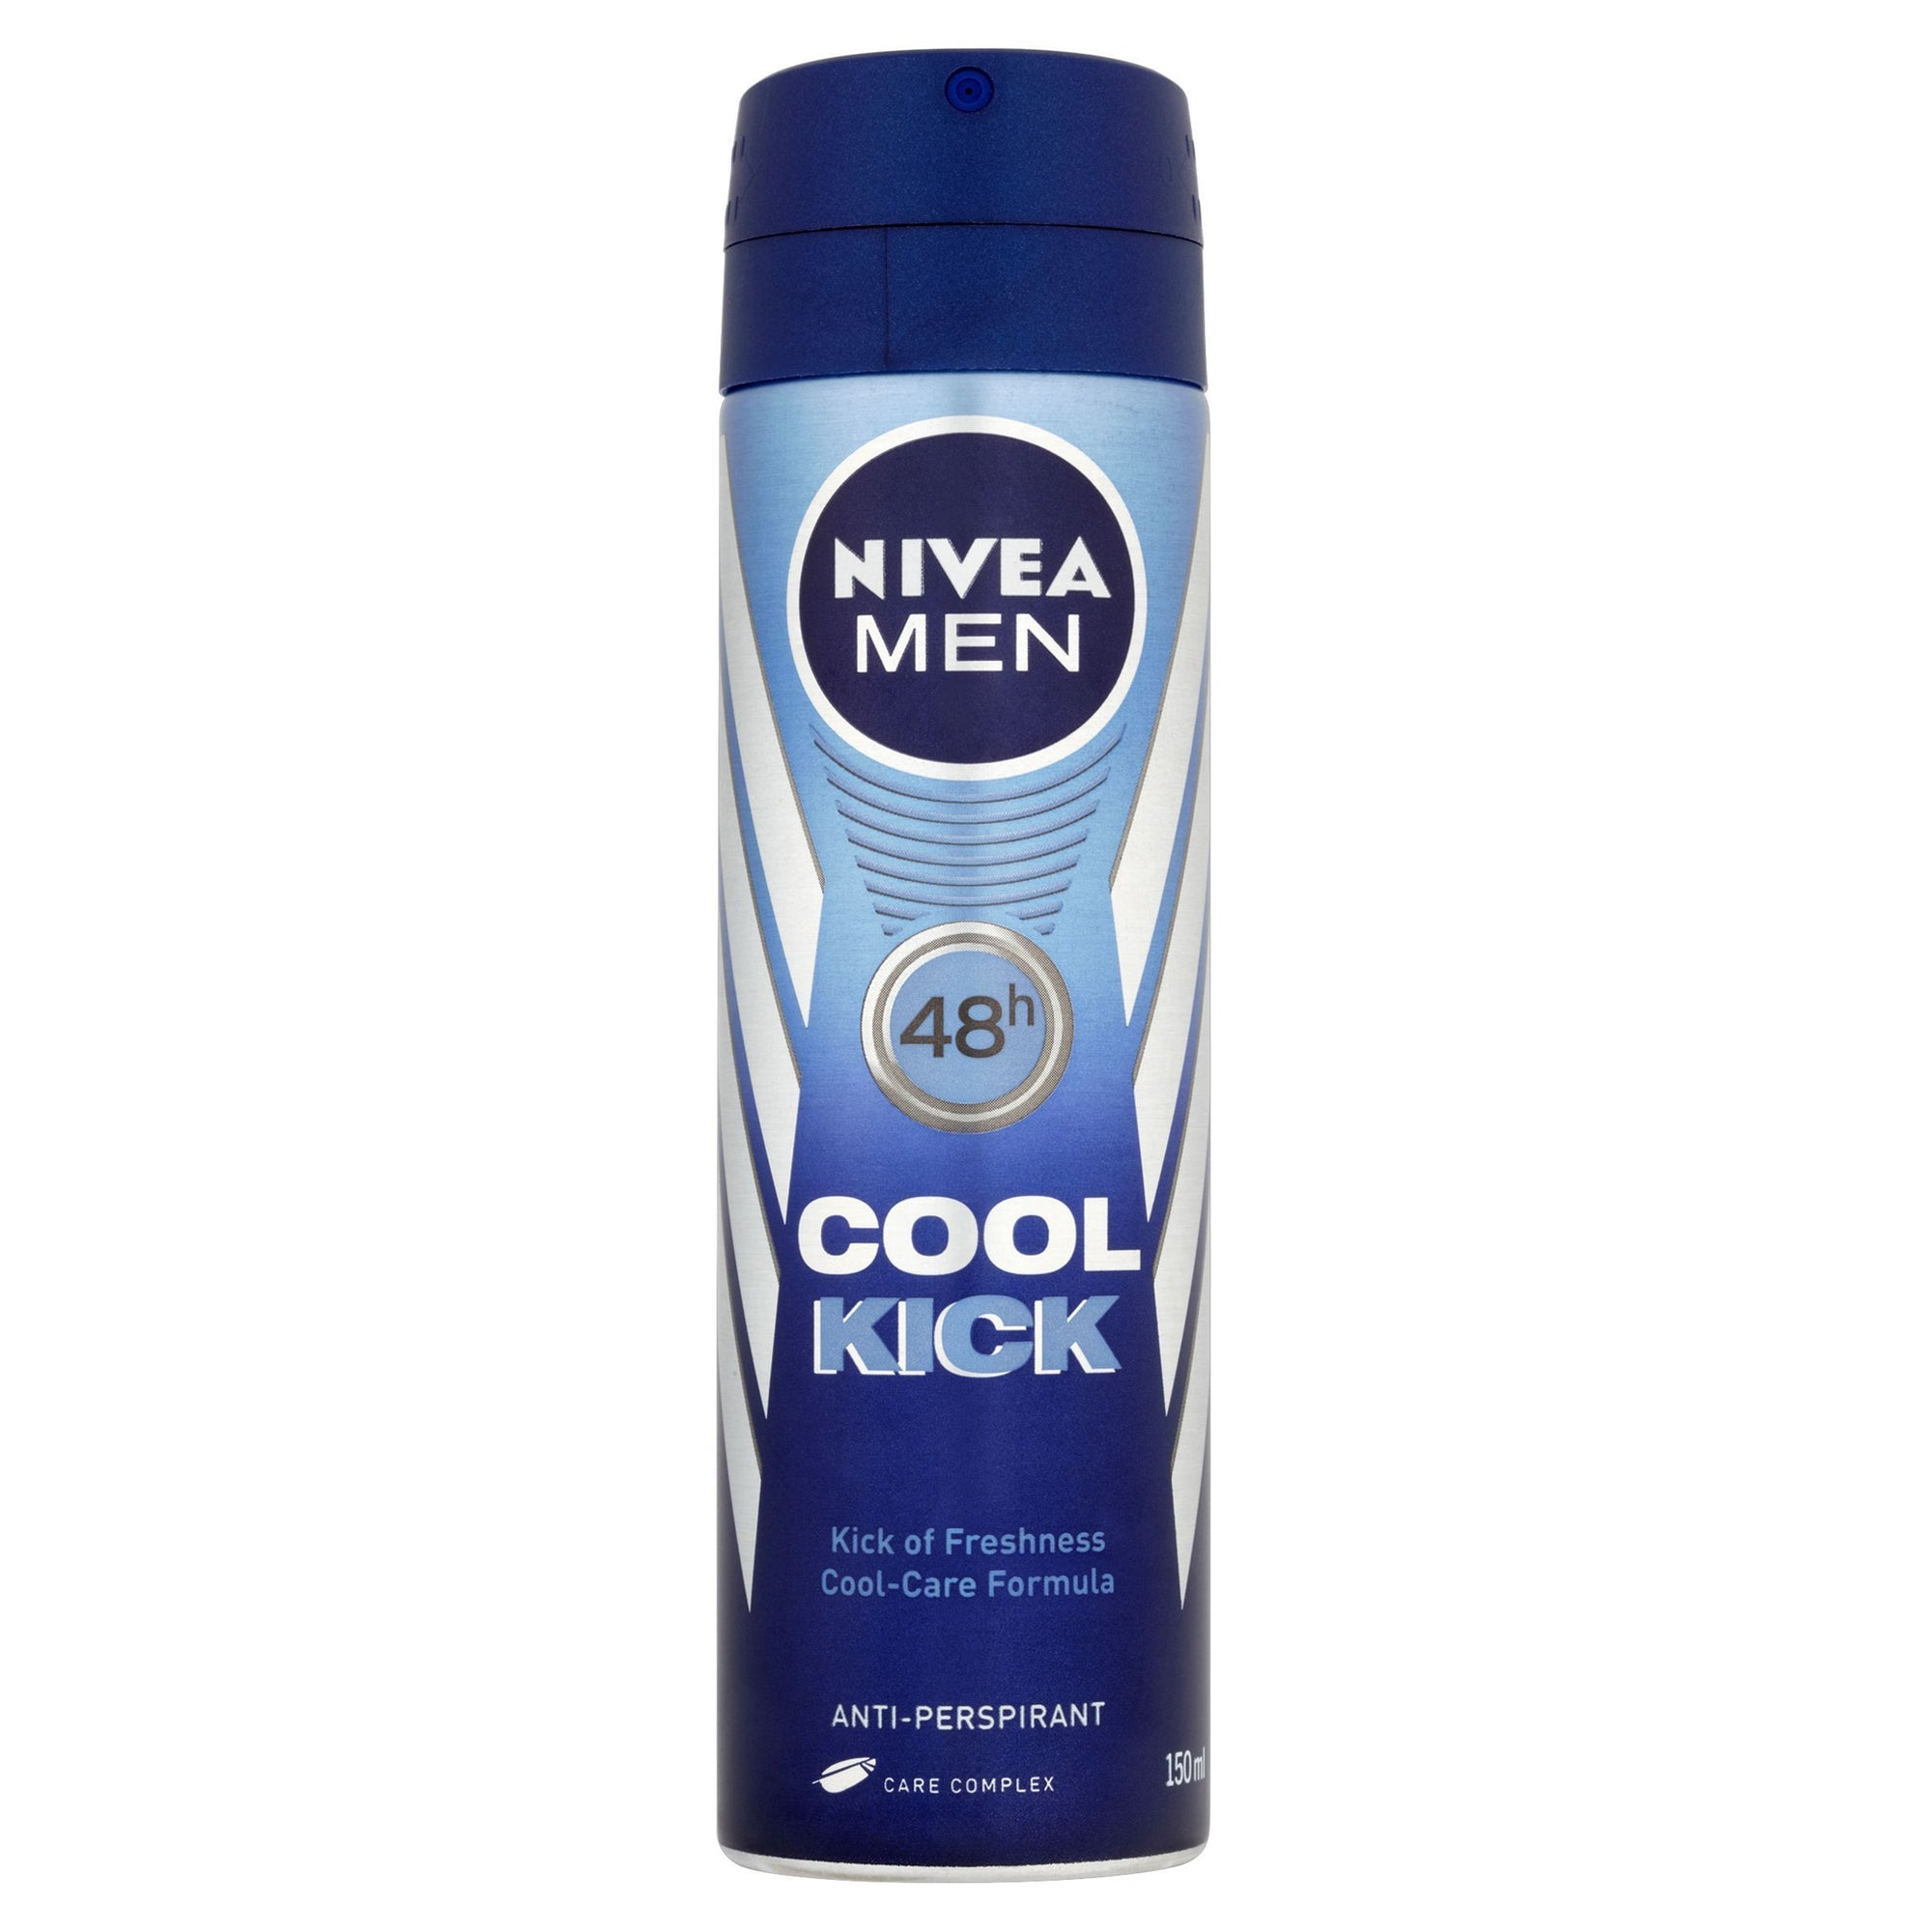 Nivea Men Cool Kick 48h Anti-Perspirant 150ml - Pack of 6 (Sty-NVNPCLKCK)